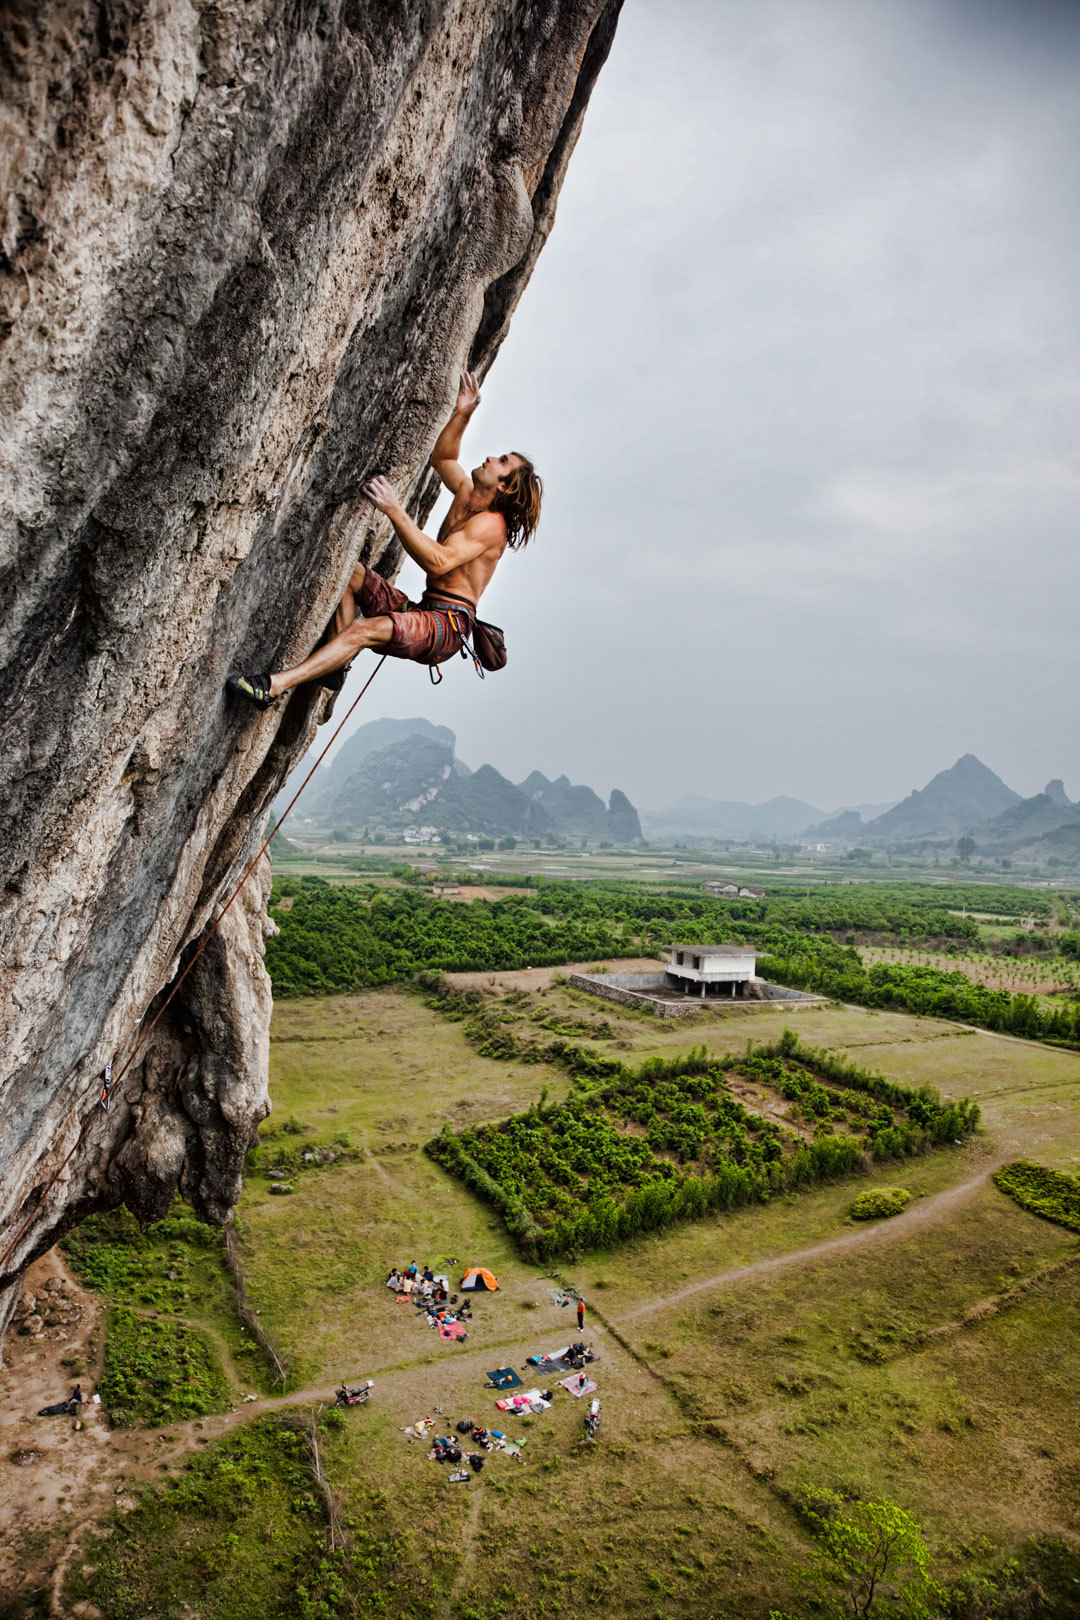 Chris SHARMA, Spicy Noodle 5.14b Photo: BOONE SPEED